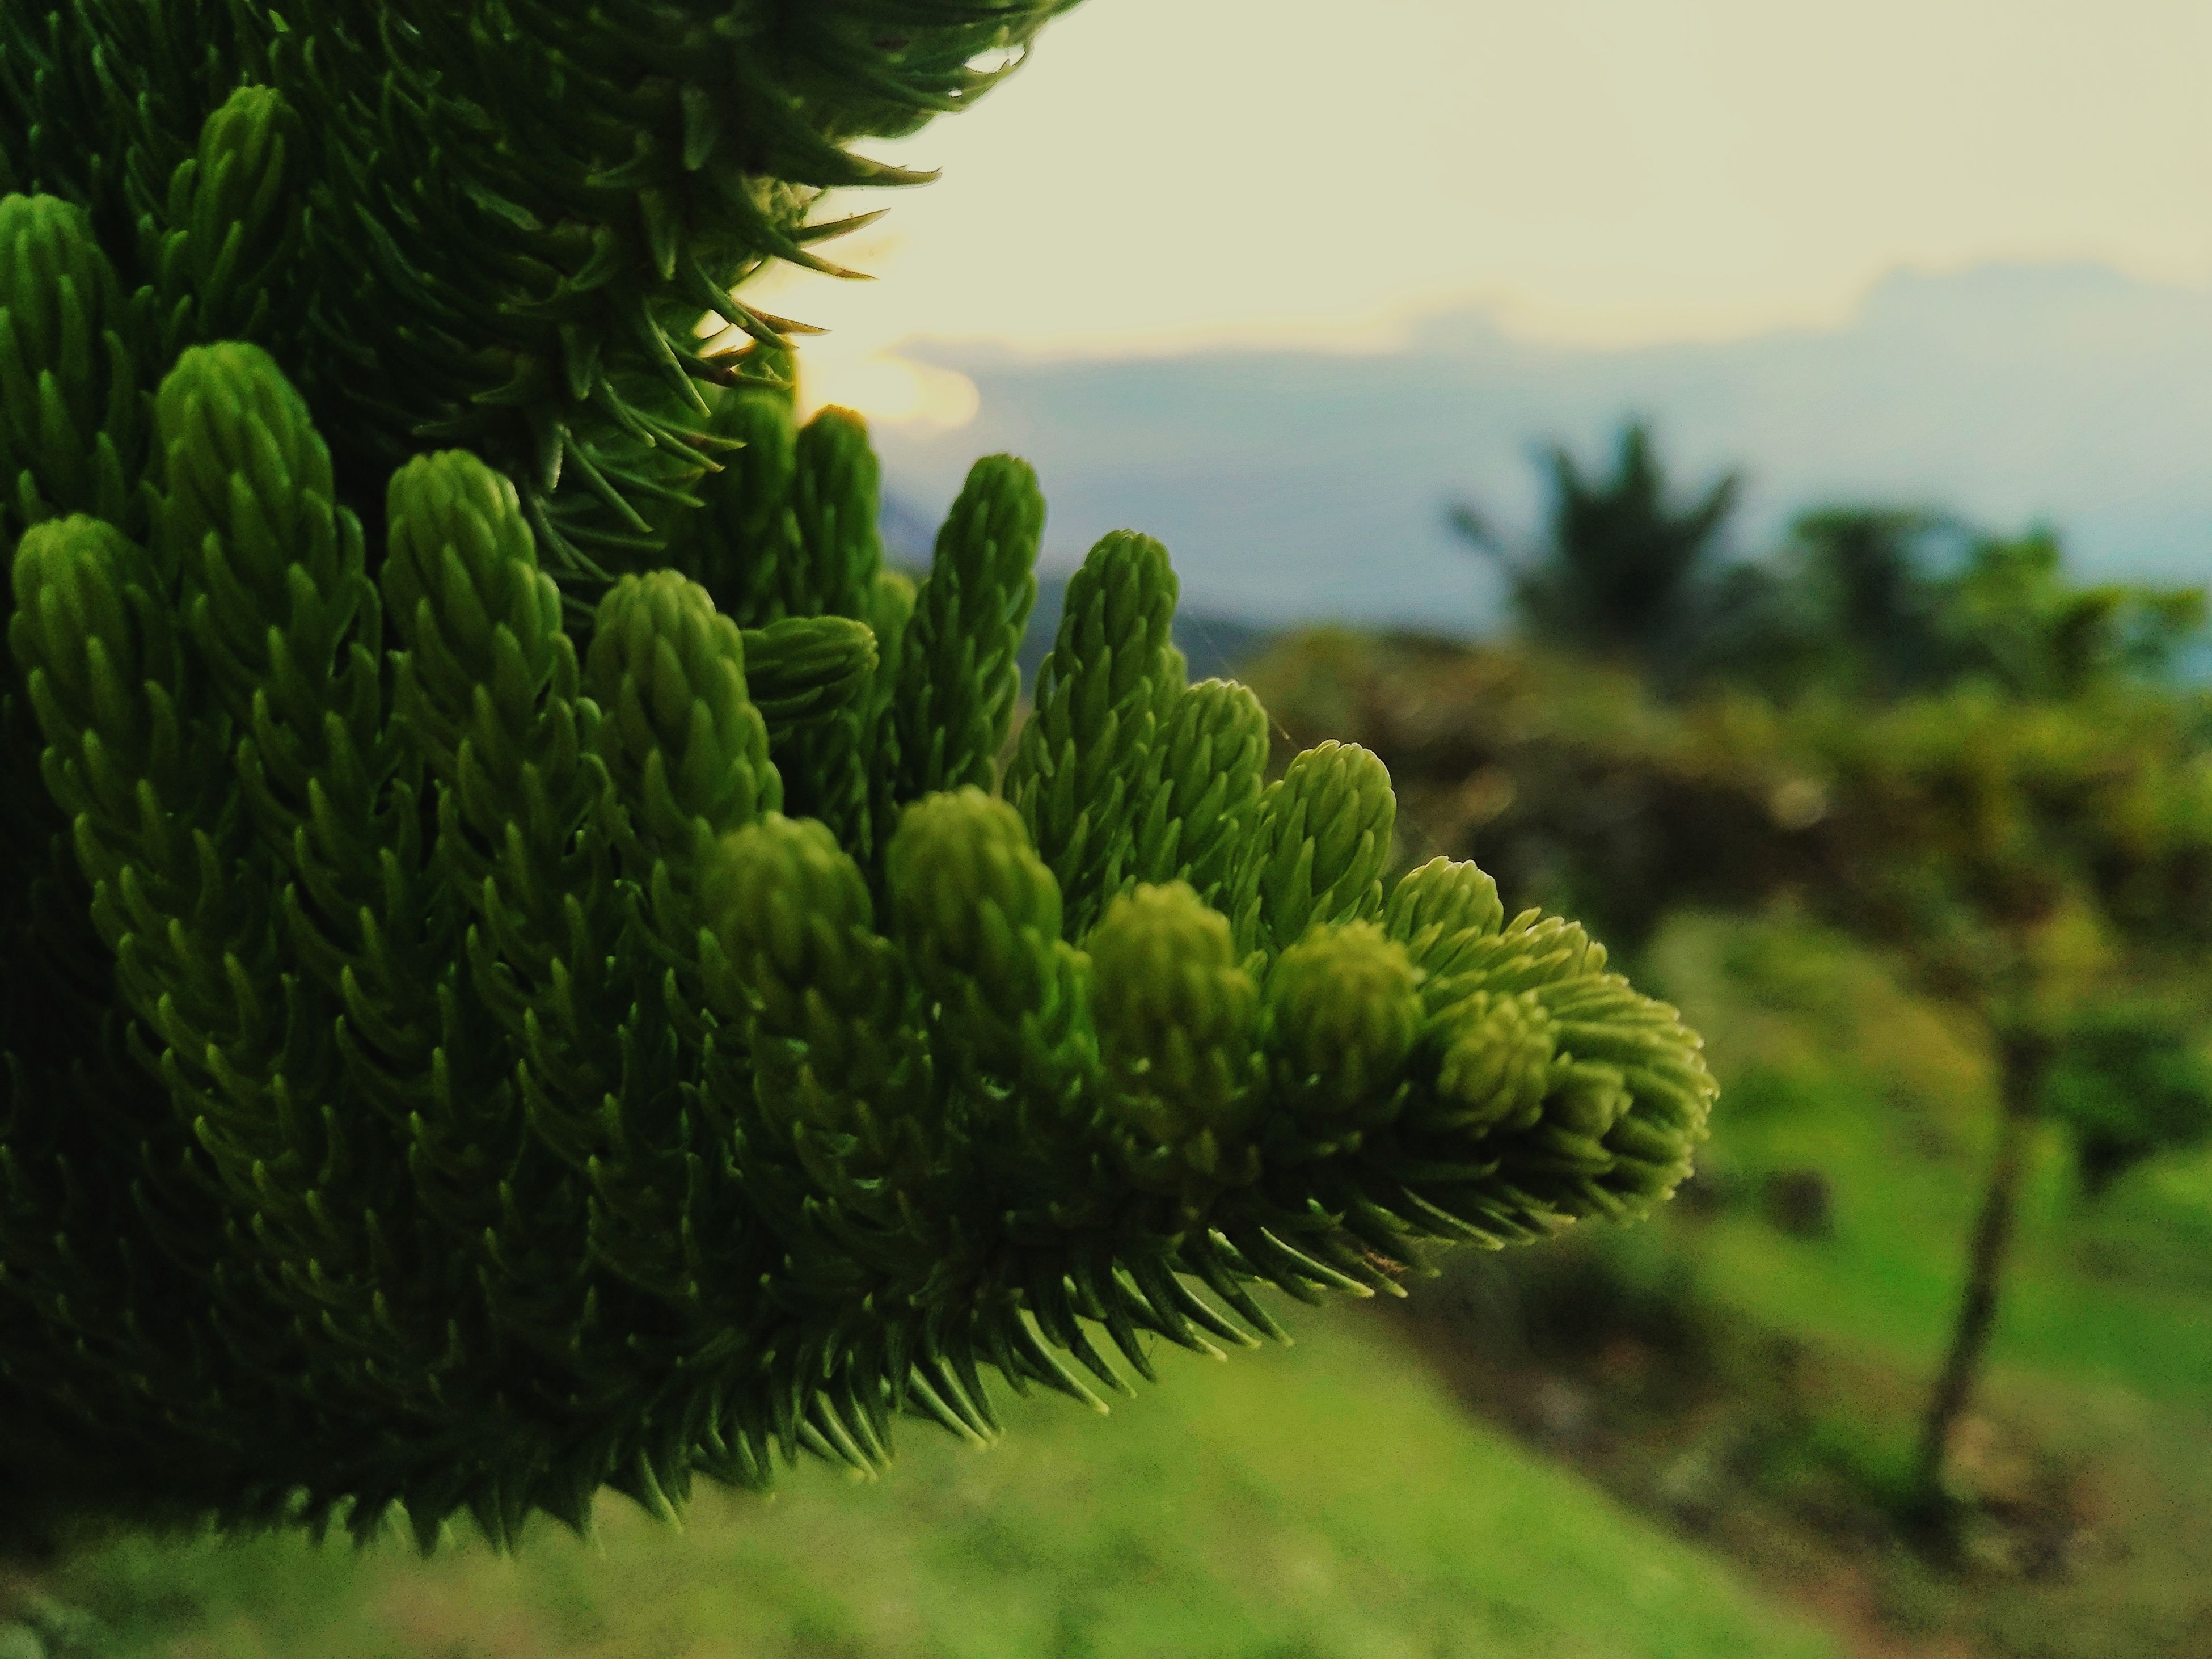 growth, nature, plant, focus on foreground, green color, beauty in nature, fern, no people, tranquility, close-up, outdoors, scenics, day, freshness